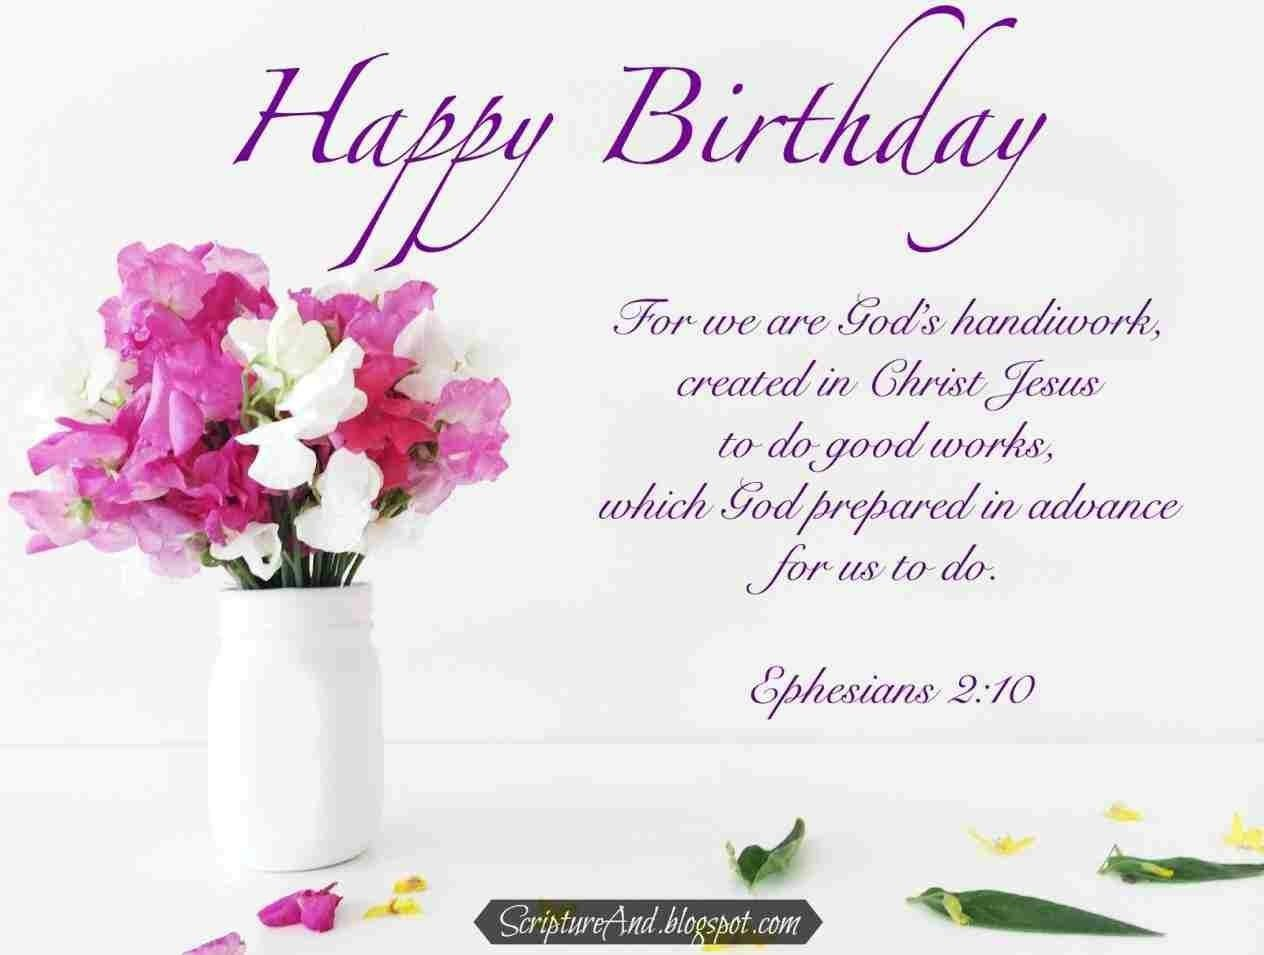 20 Inspirational Bible Quotes For 21st Birthday Happy 21st Birthday Wishes Birthday Wishes For Myself Spiritual Birthday Wishes